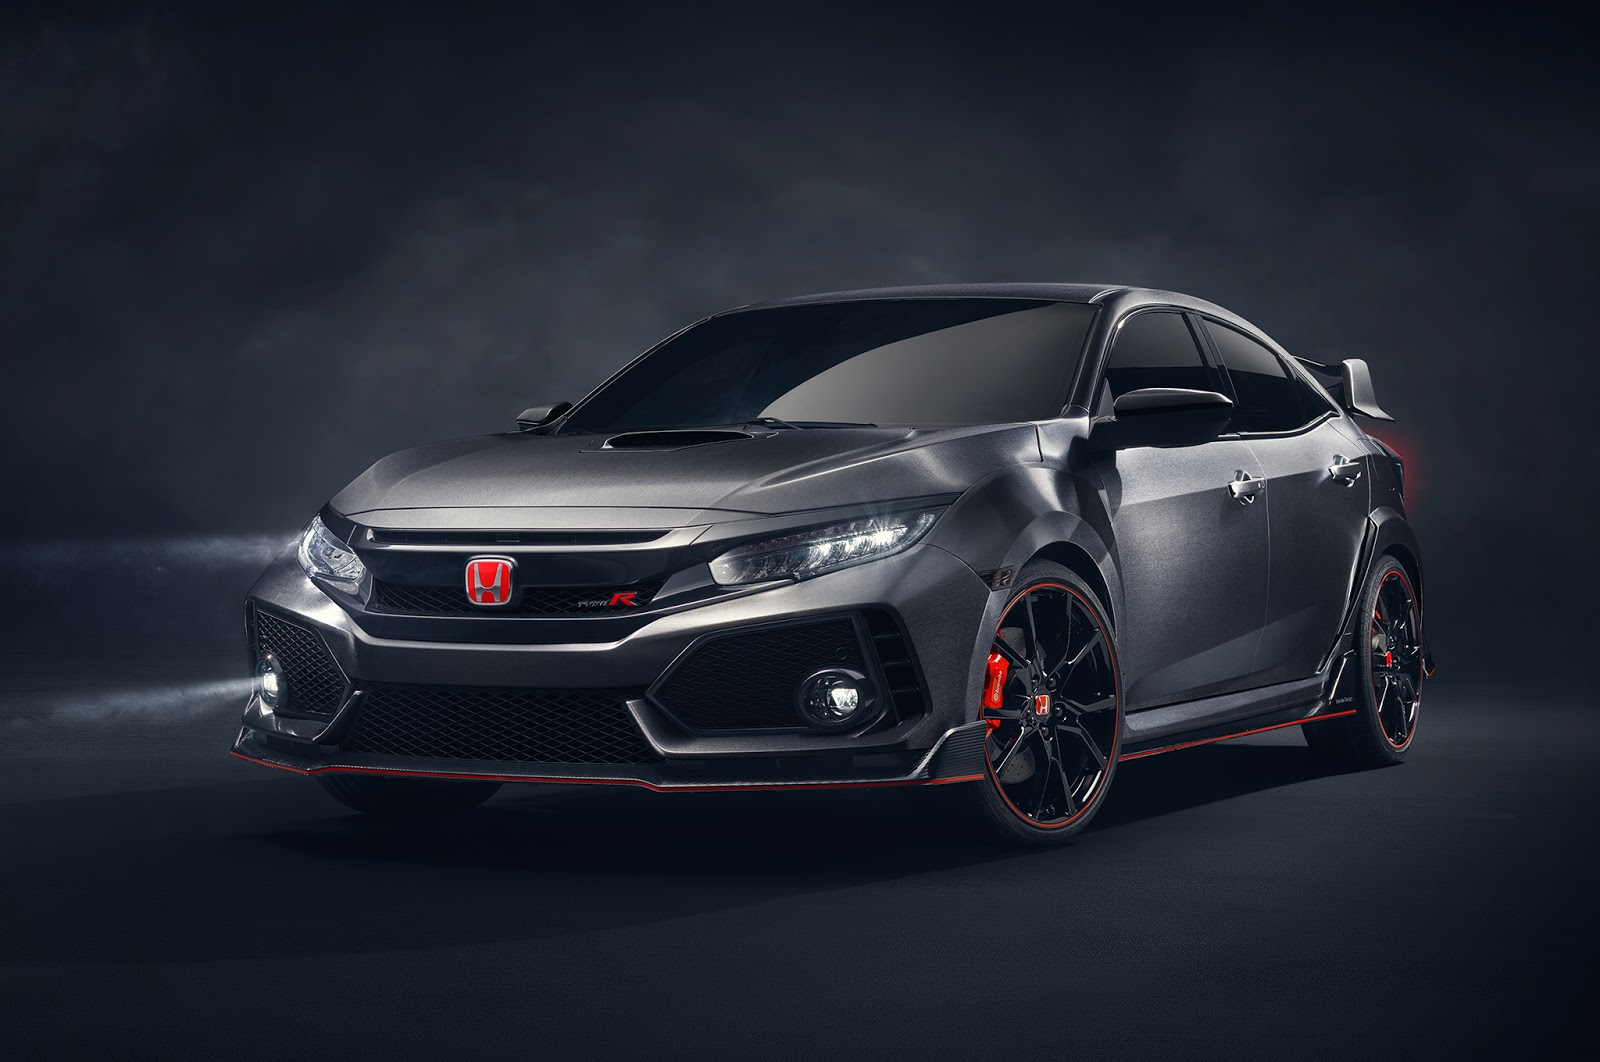 2018-Honda-Civic-Type-R-1.jpg